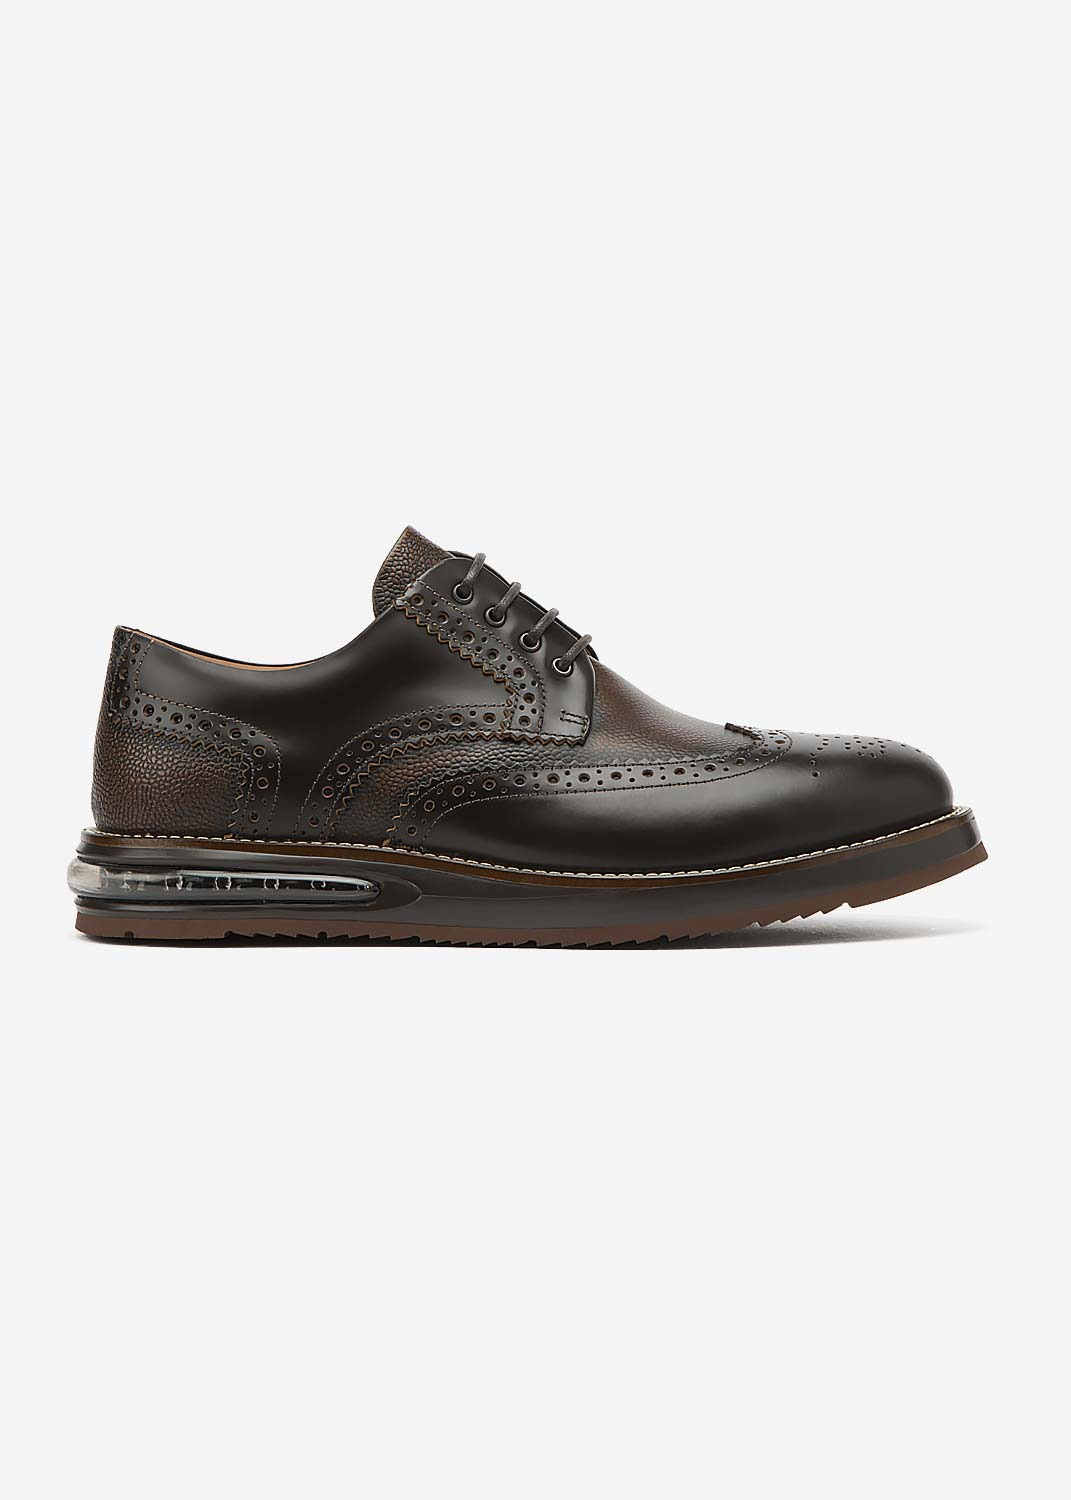 Air Brogue Choco Grain